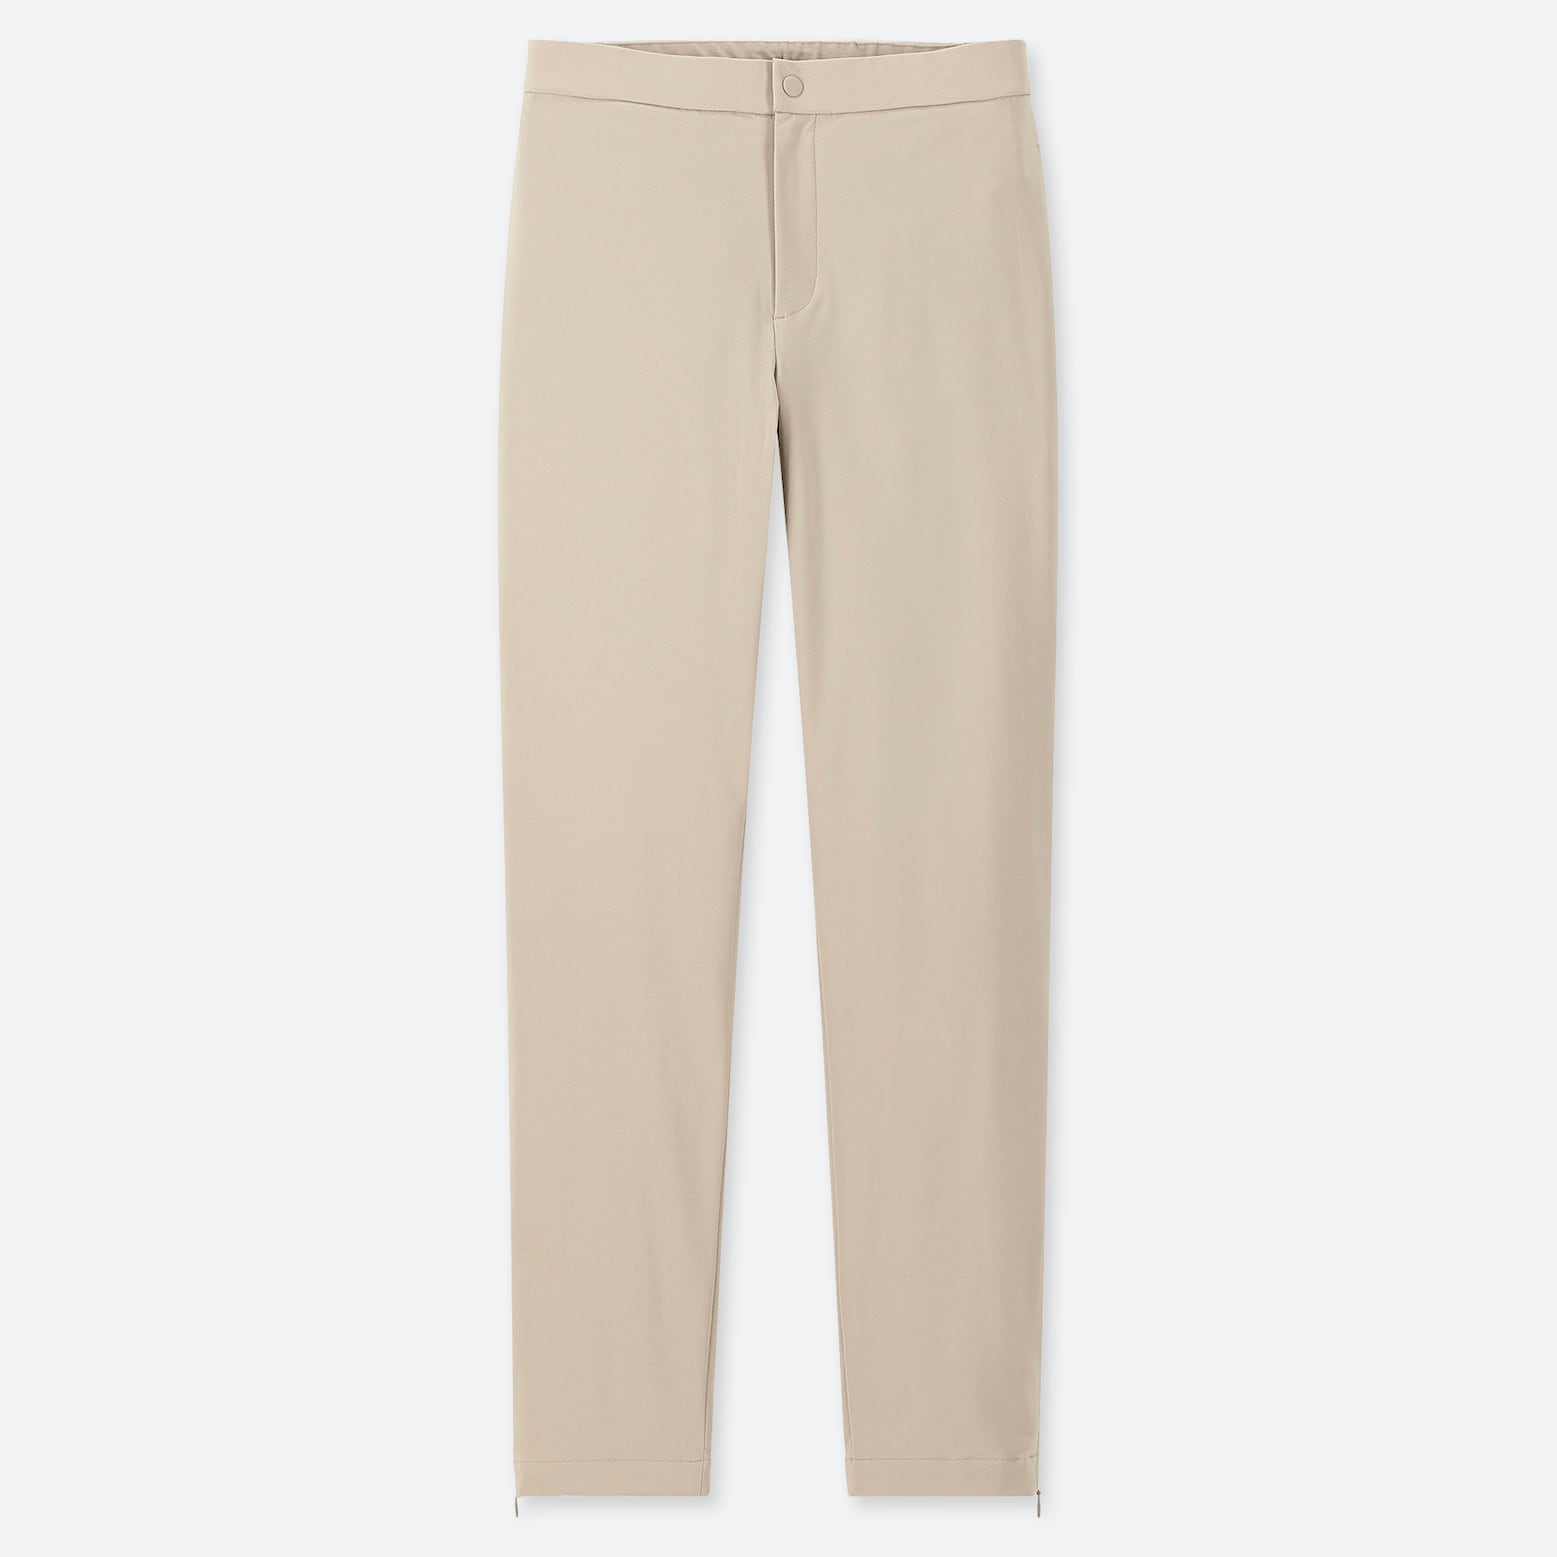 "Heattech Warm Lined Pants (Tall  32"") by Uniqlo"